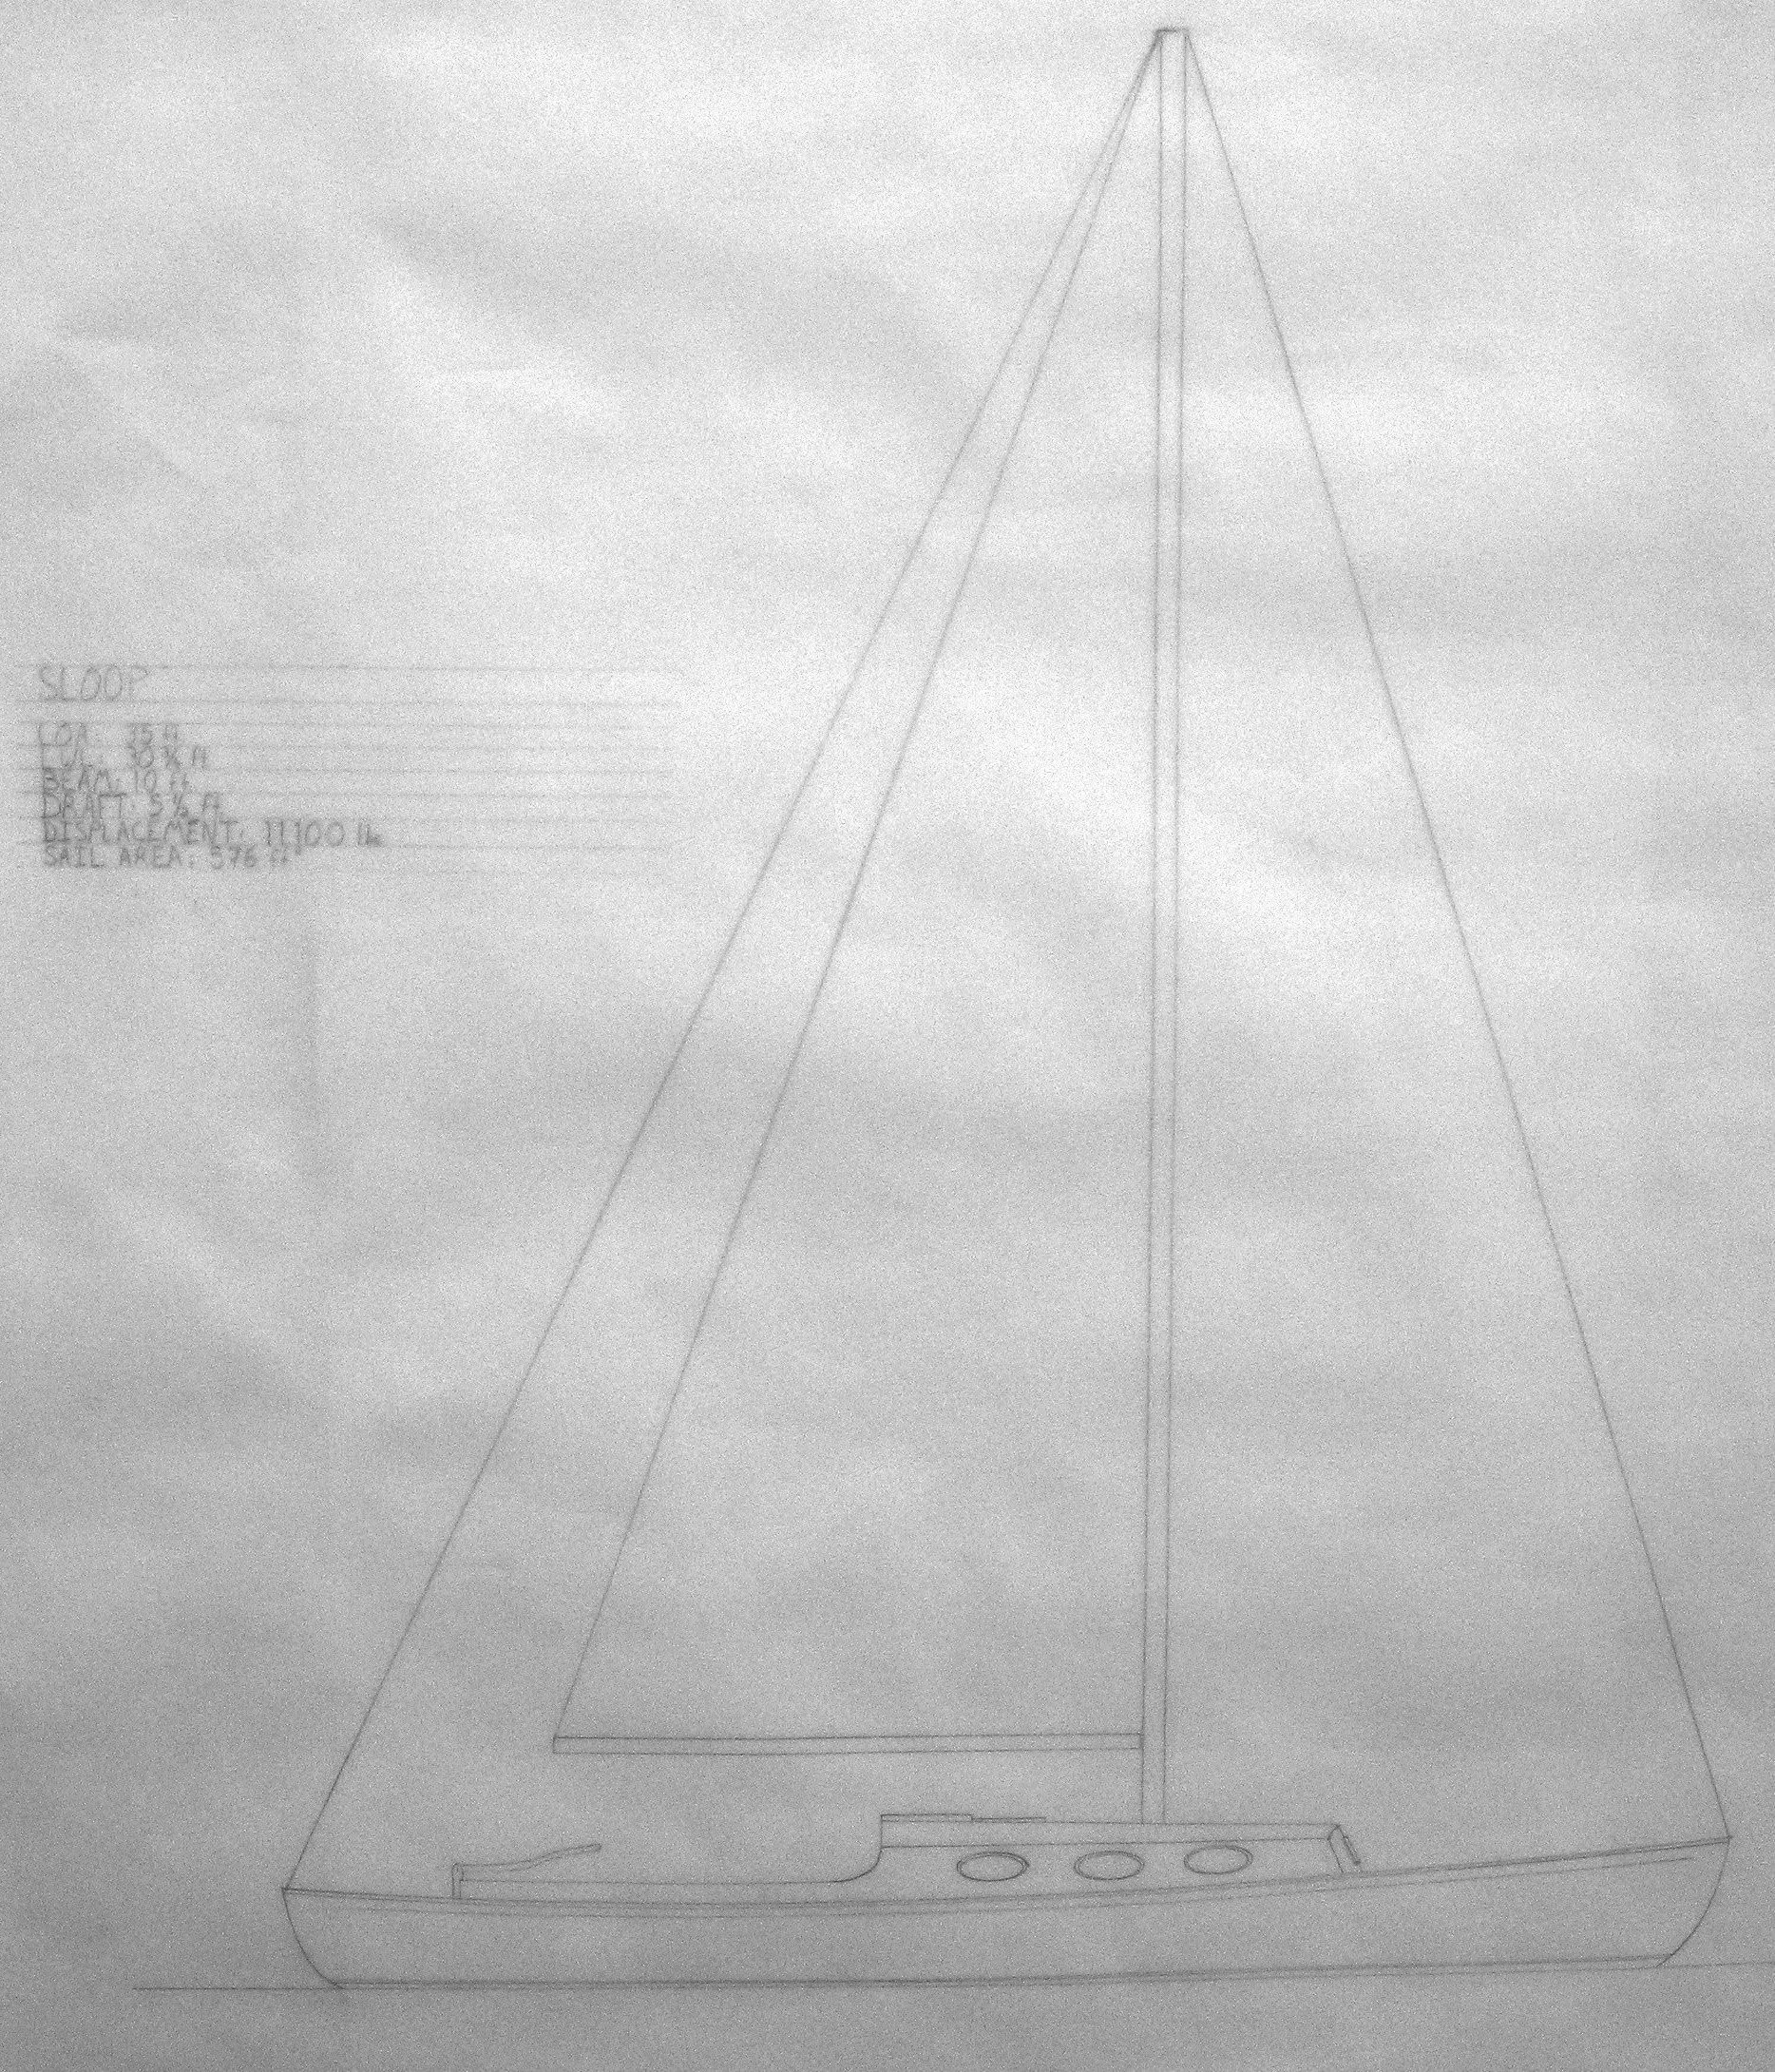 Sloop LiLo,in profile